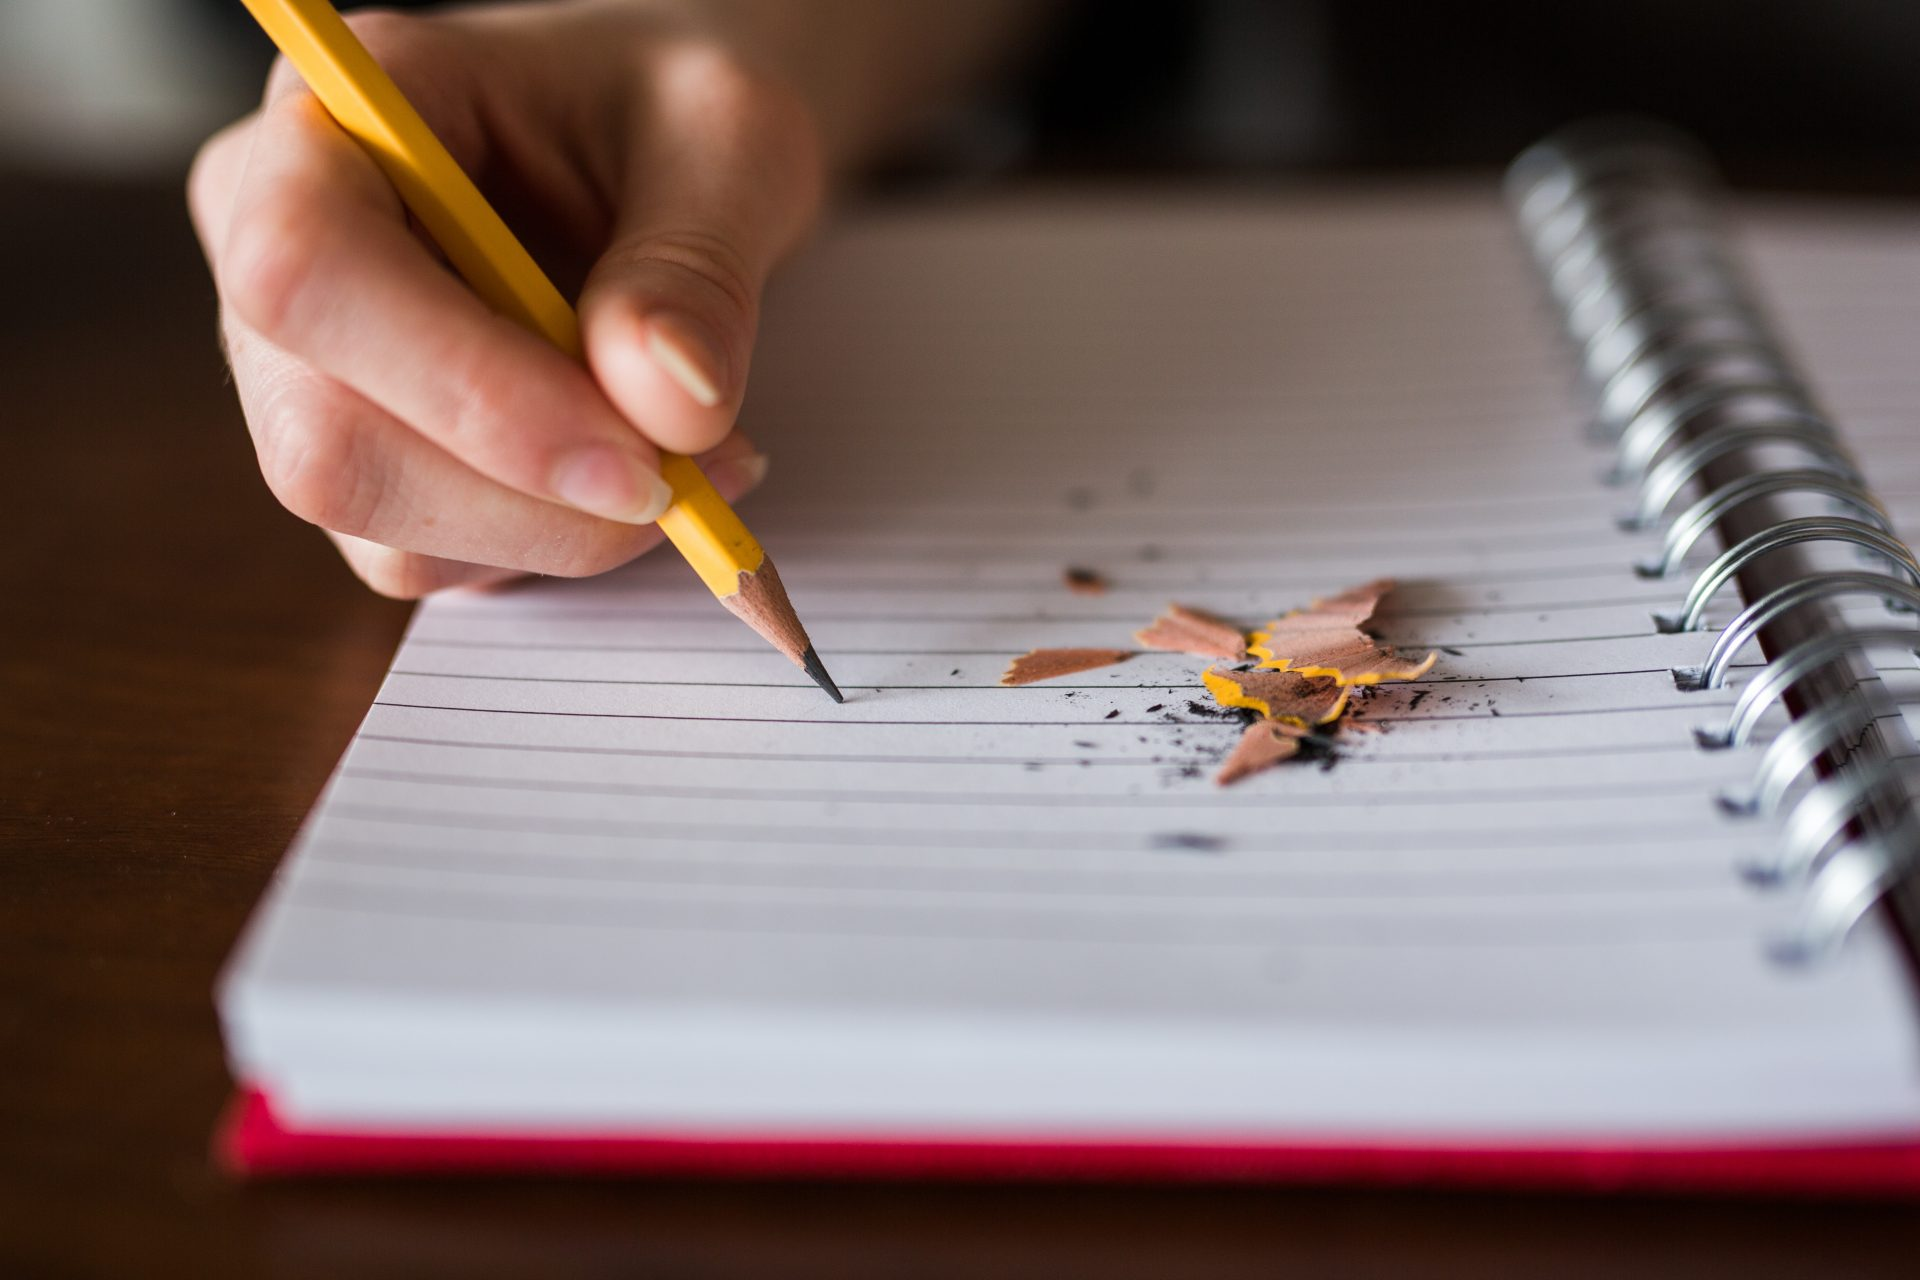 A person writing in a red lined notebook with a pencil, with pencil shavings on the paper.